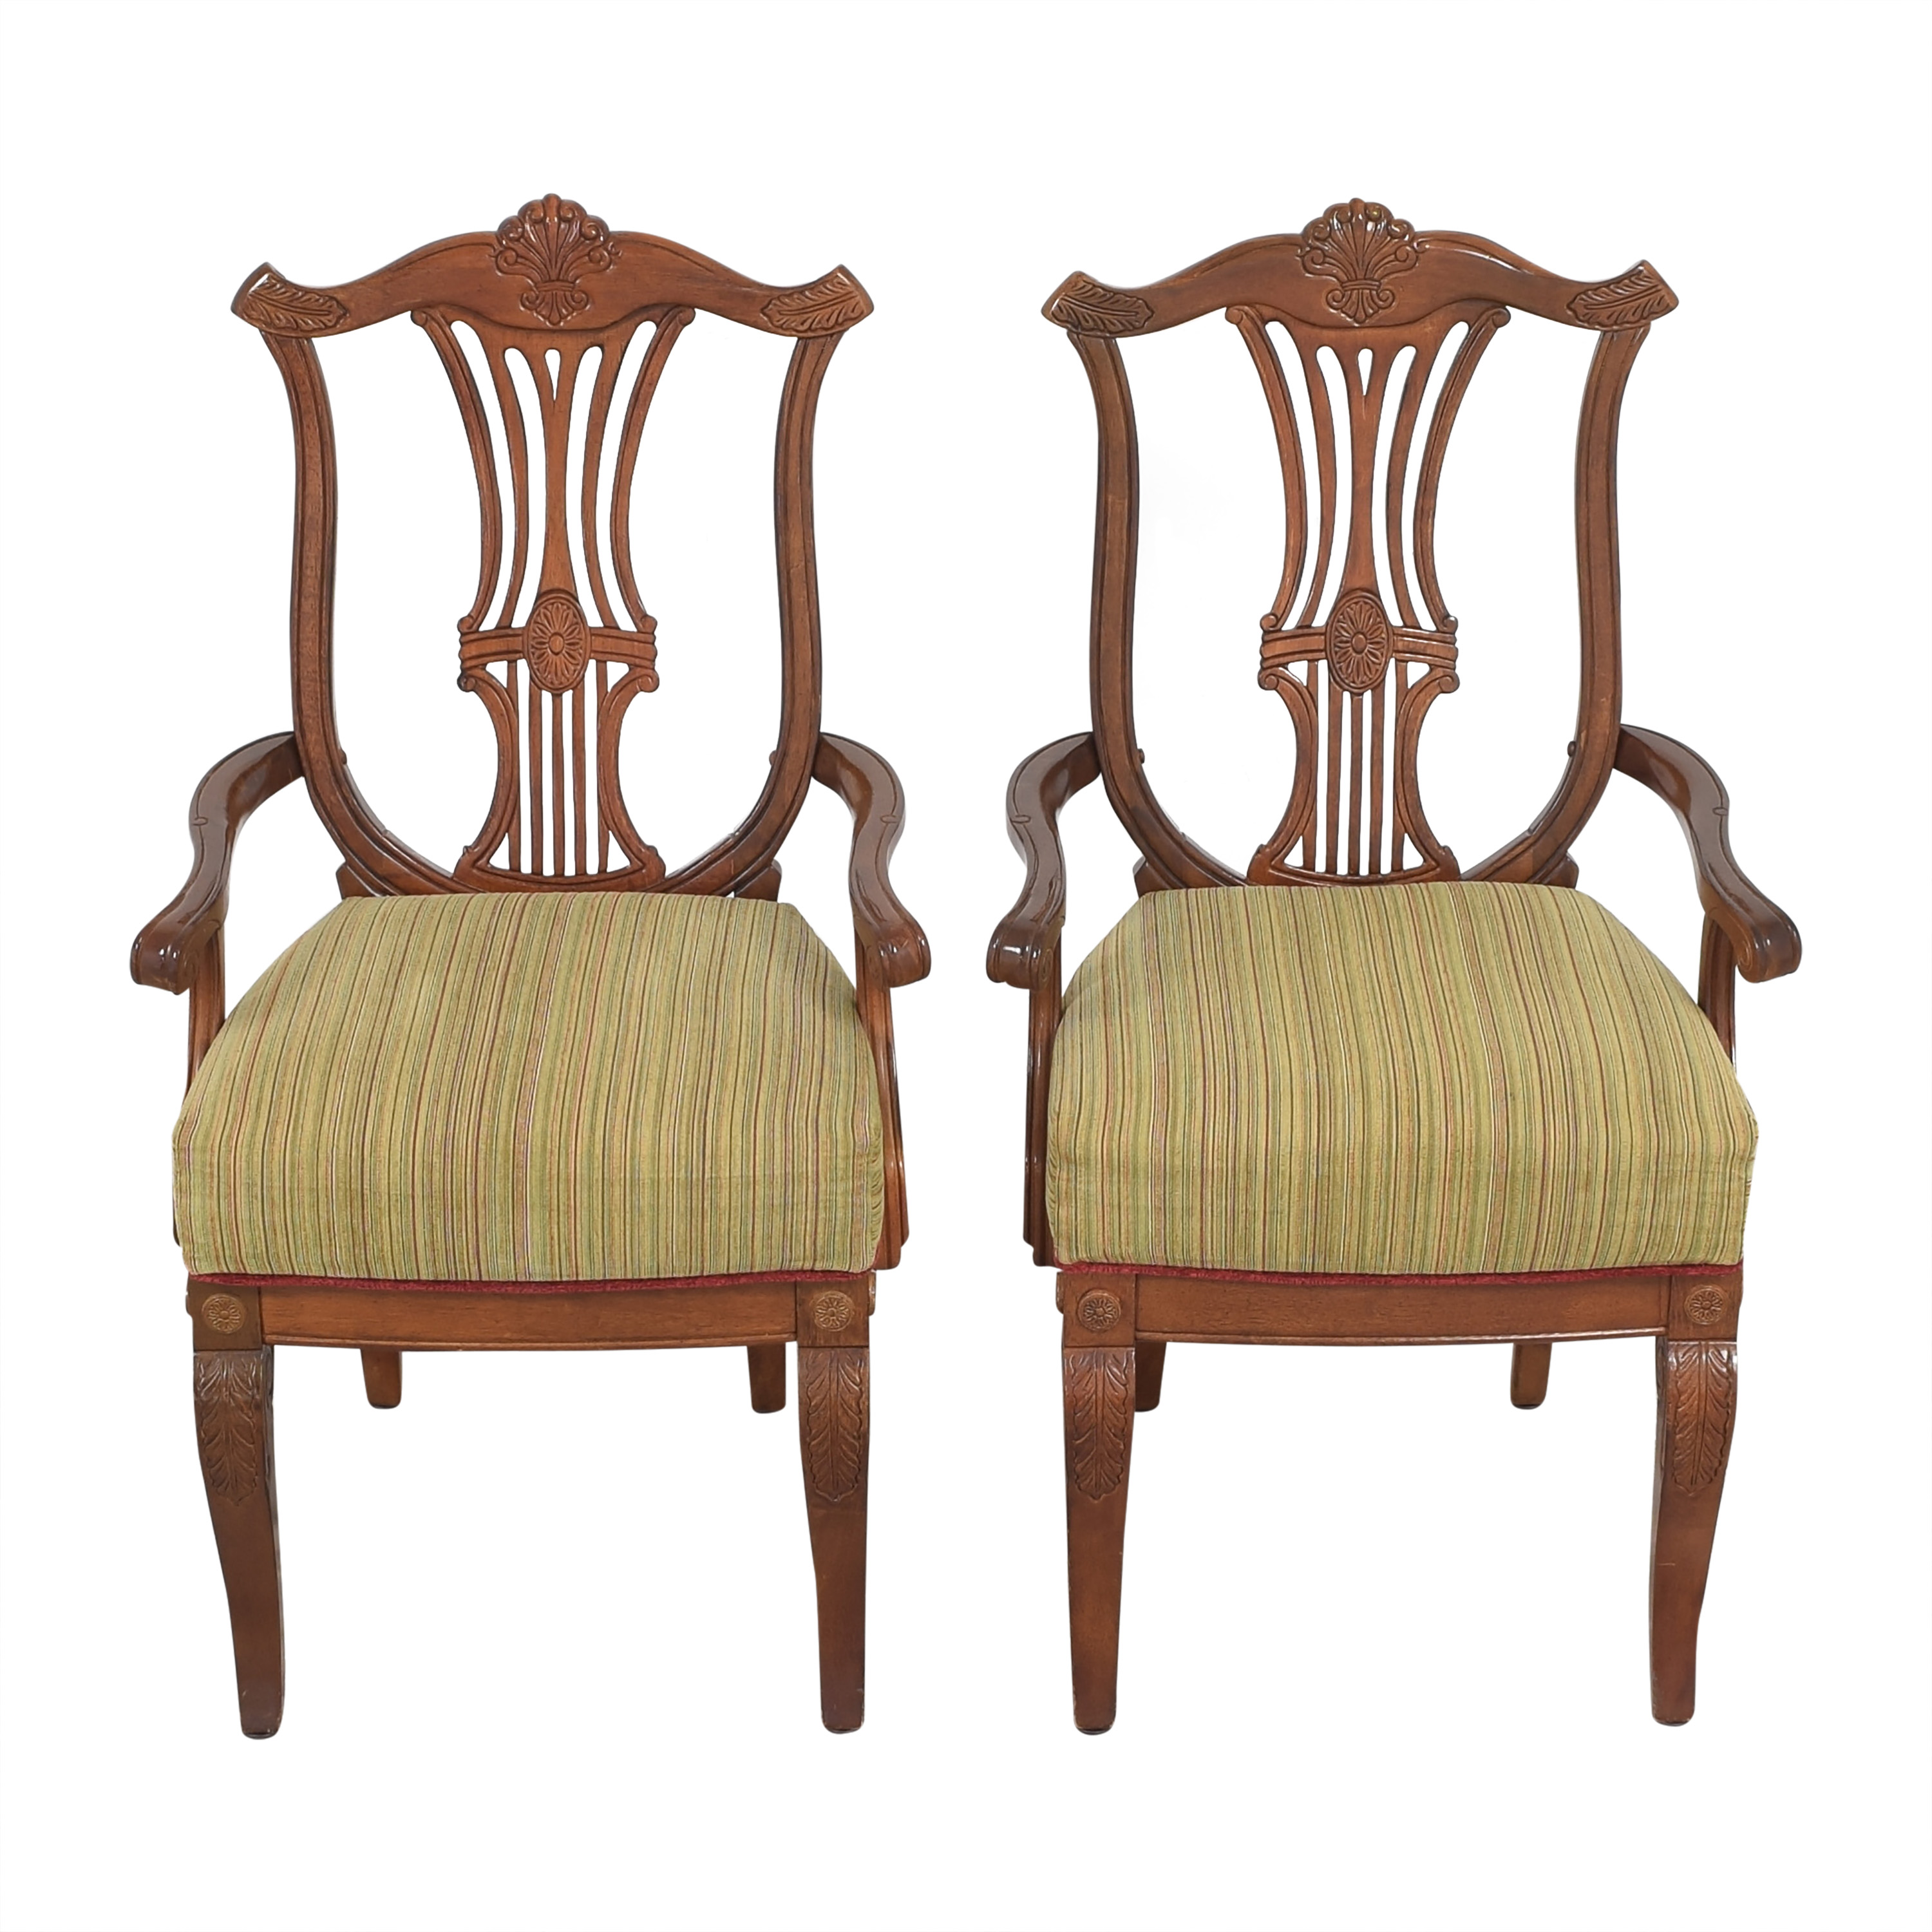 Universal Furniture Upholstered Dining Chairs  / Chairs